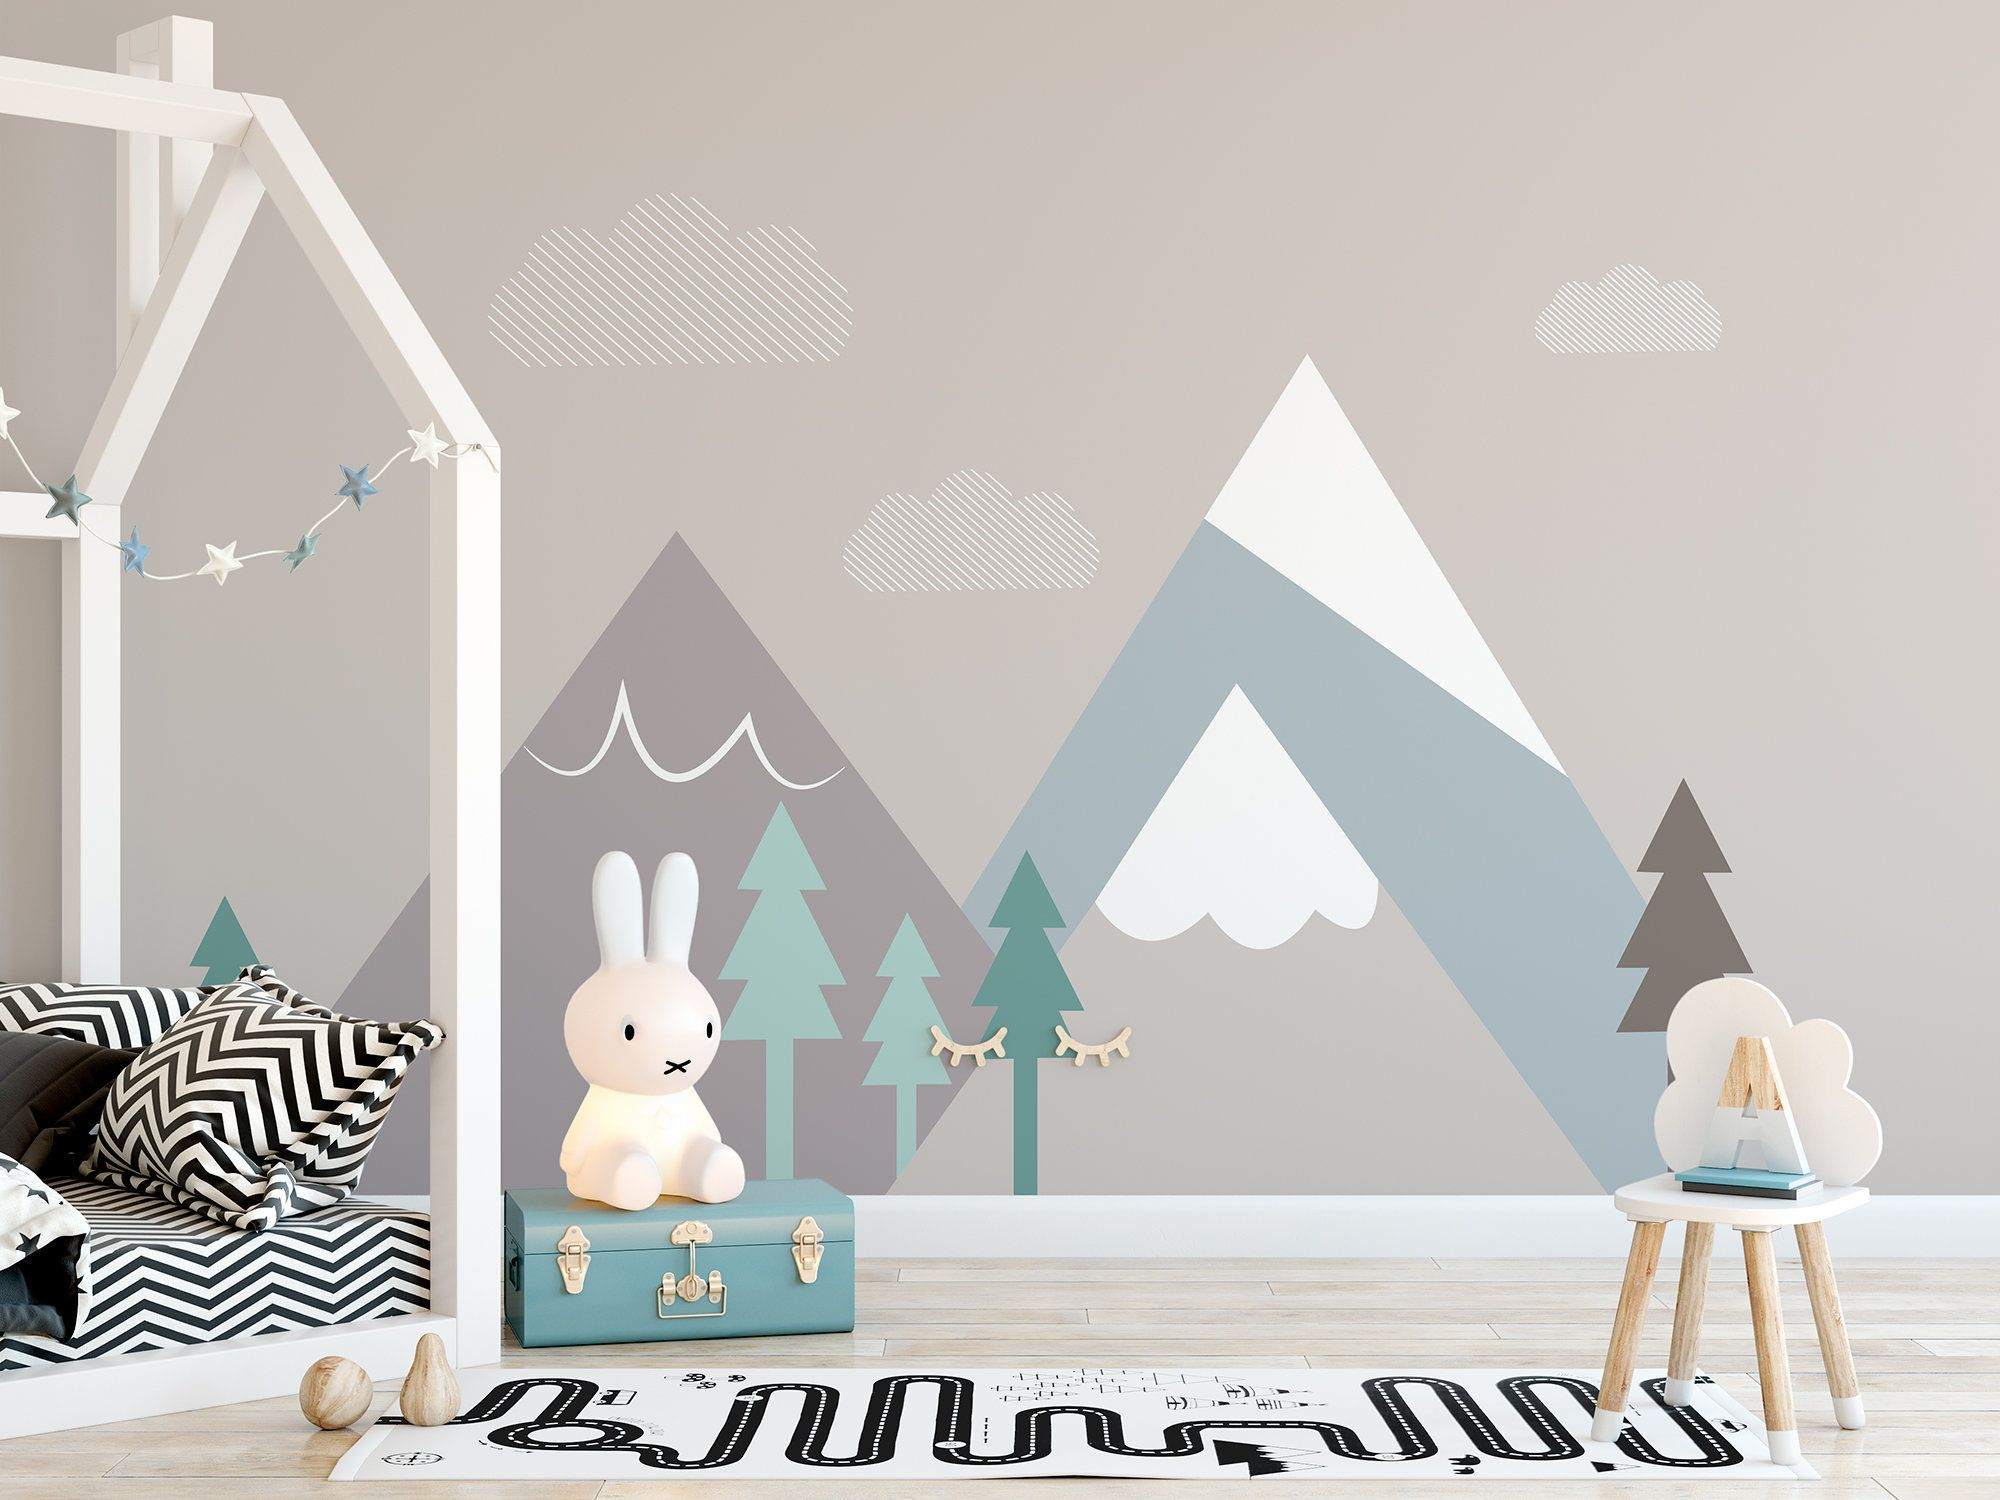 Mountain Snowy And Clouds Scandinavian Wallpaper Self Adhesive Etsy In 2020 Kids Room Paint Kids Room Murals Kids Room Wall Decor